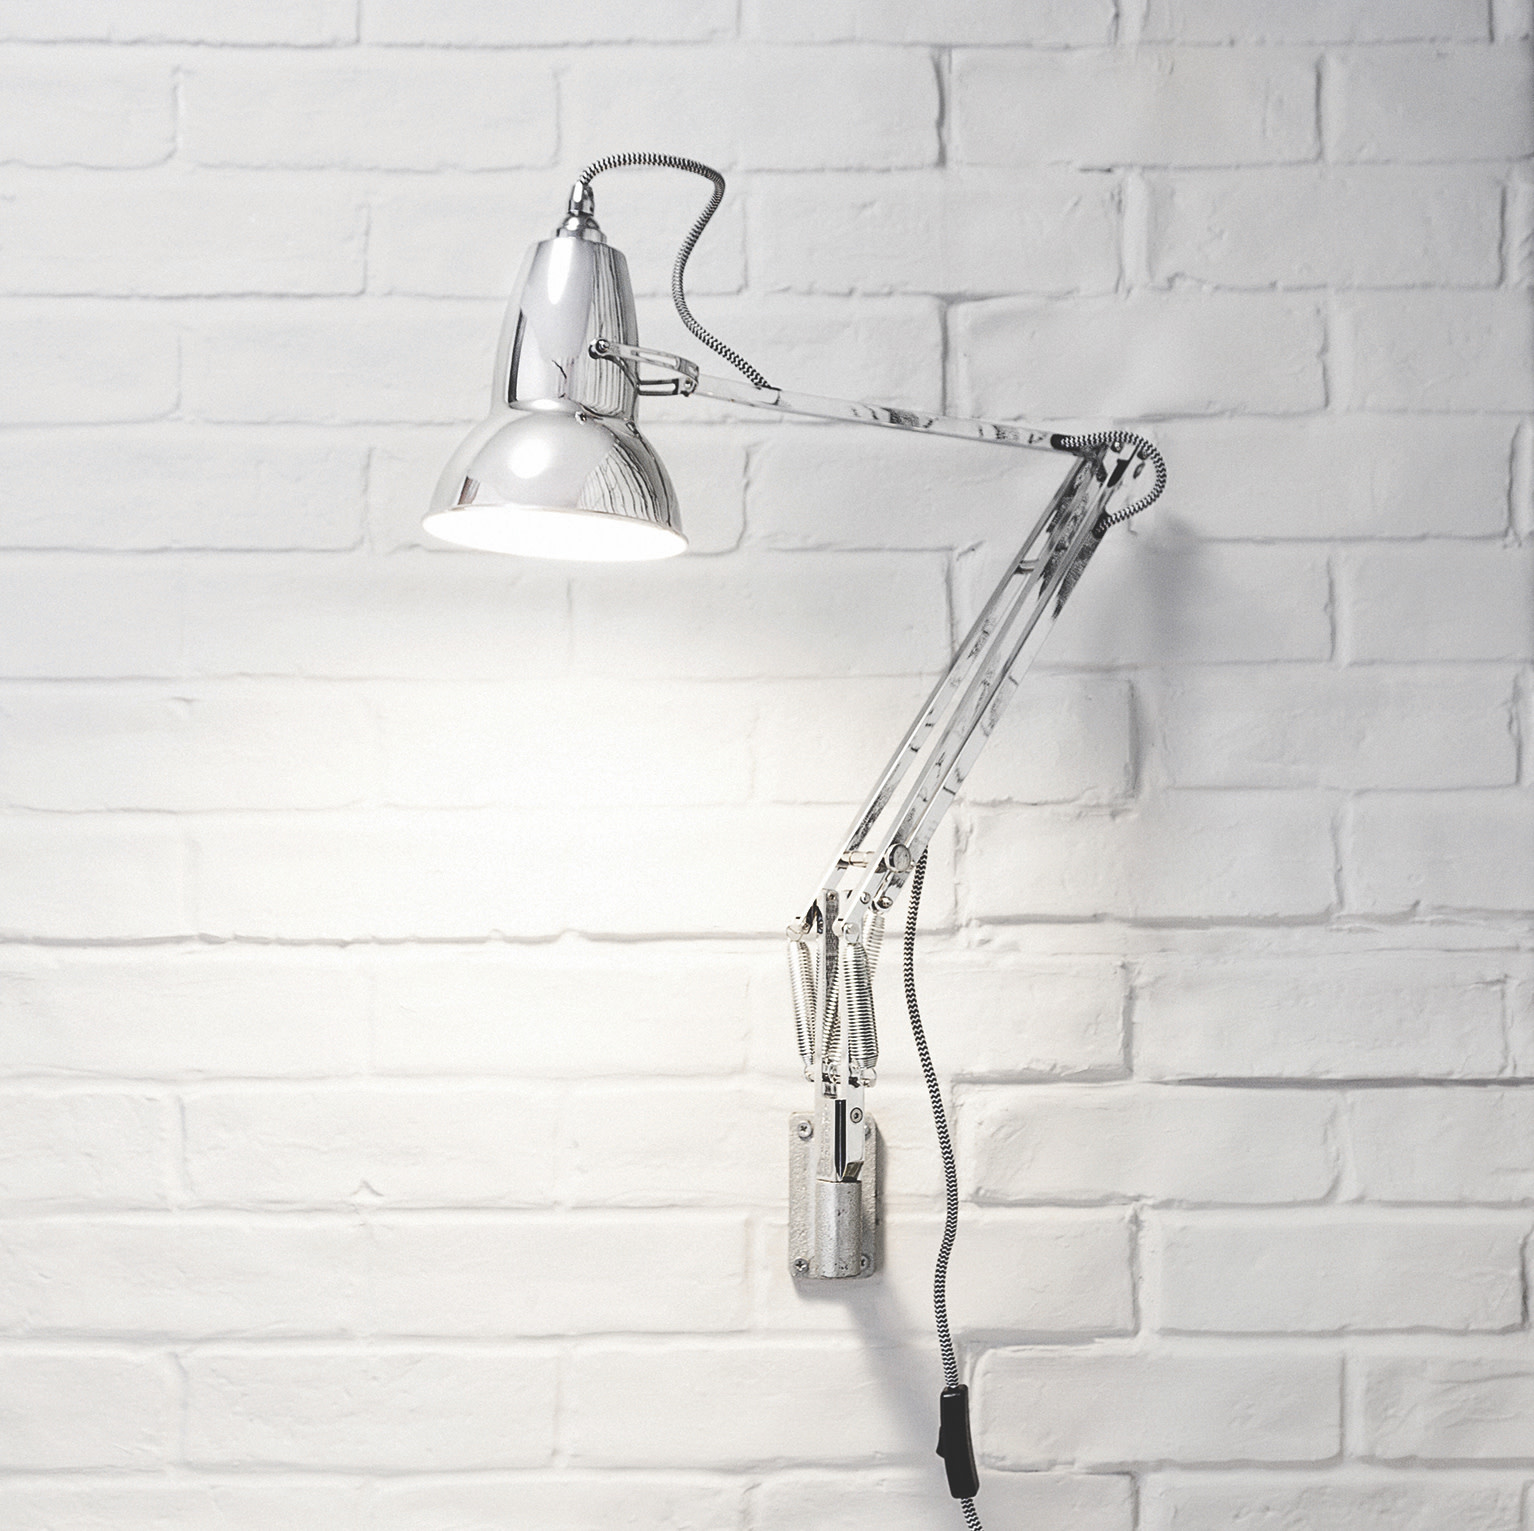 Anglepoise PREORDER Wall Mount Bracket for Original 1227 Series Lamps - Chrome Finish